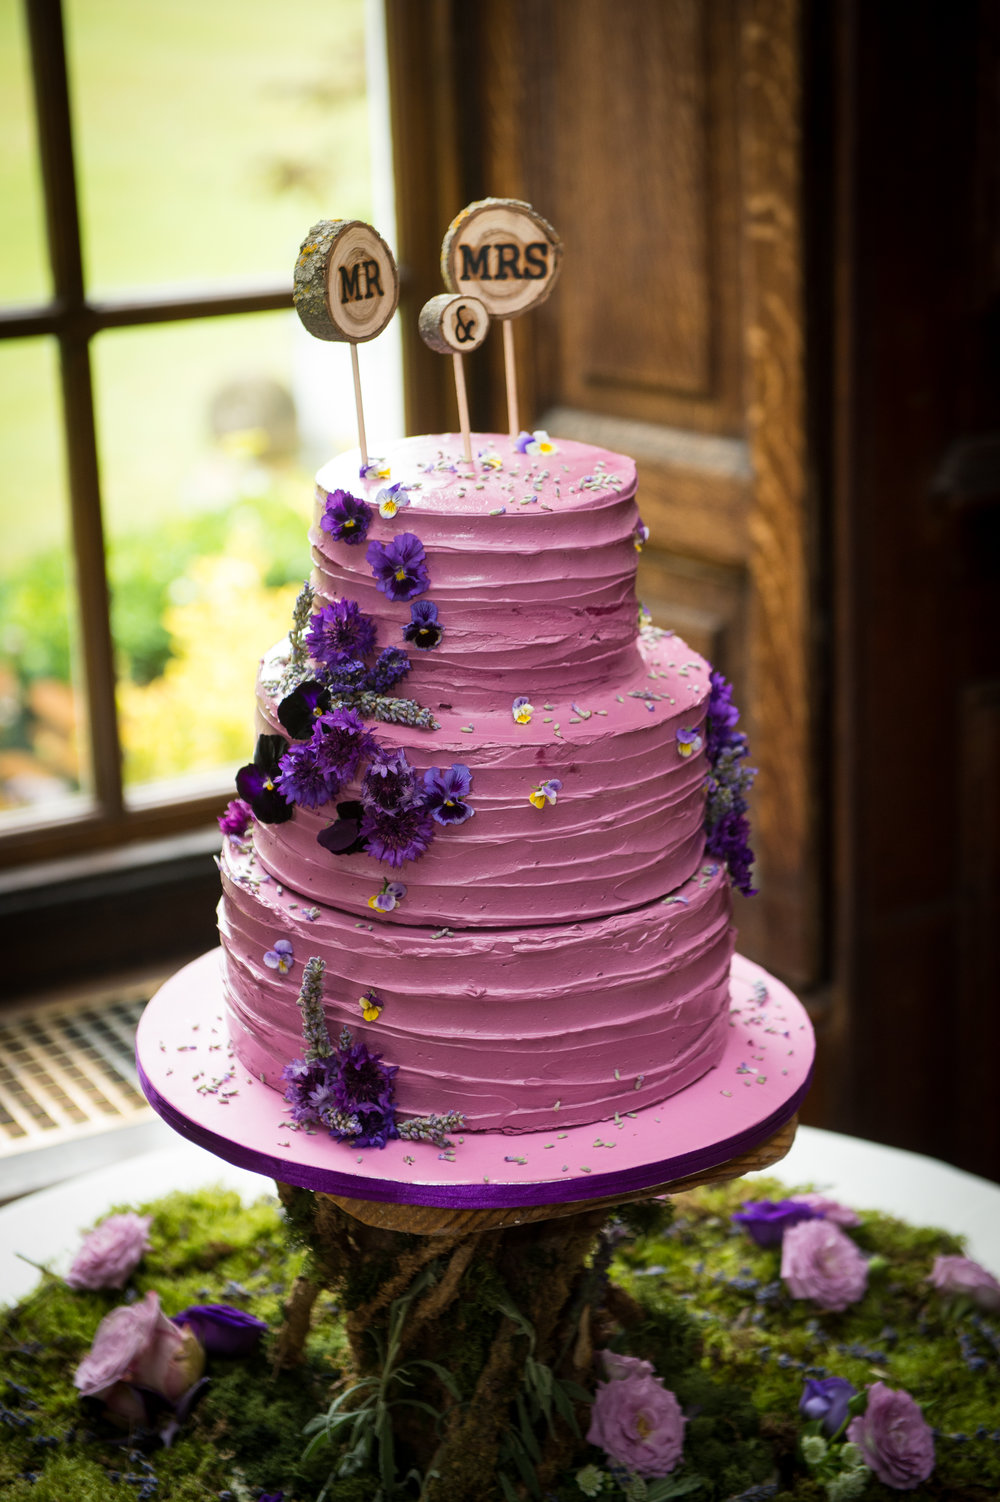 mauve buttercream wedding cake with edible flowers